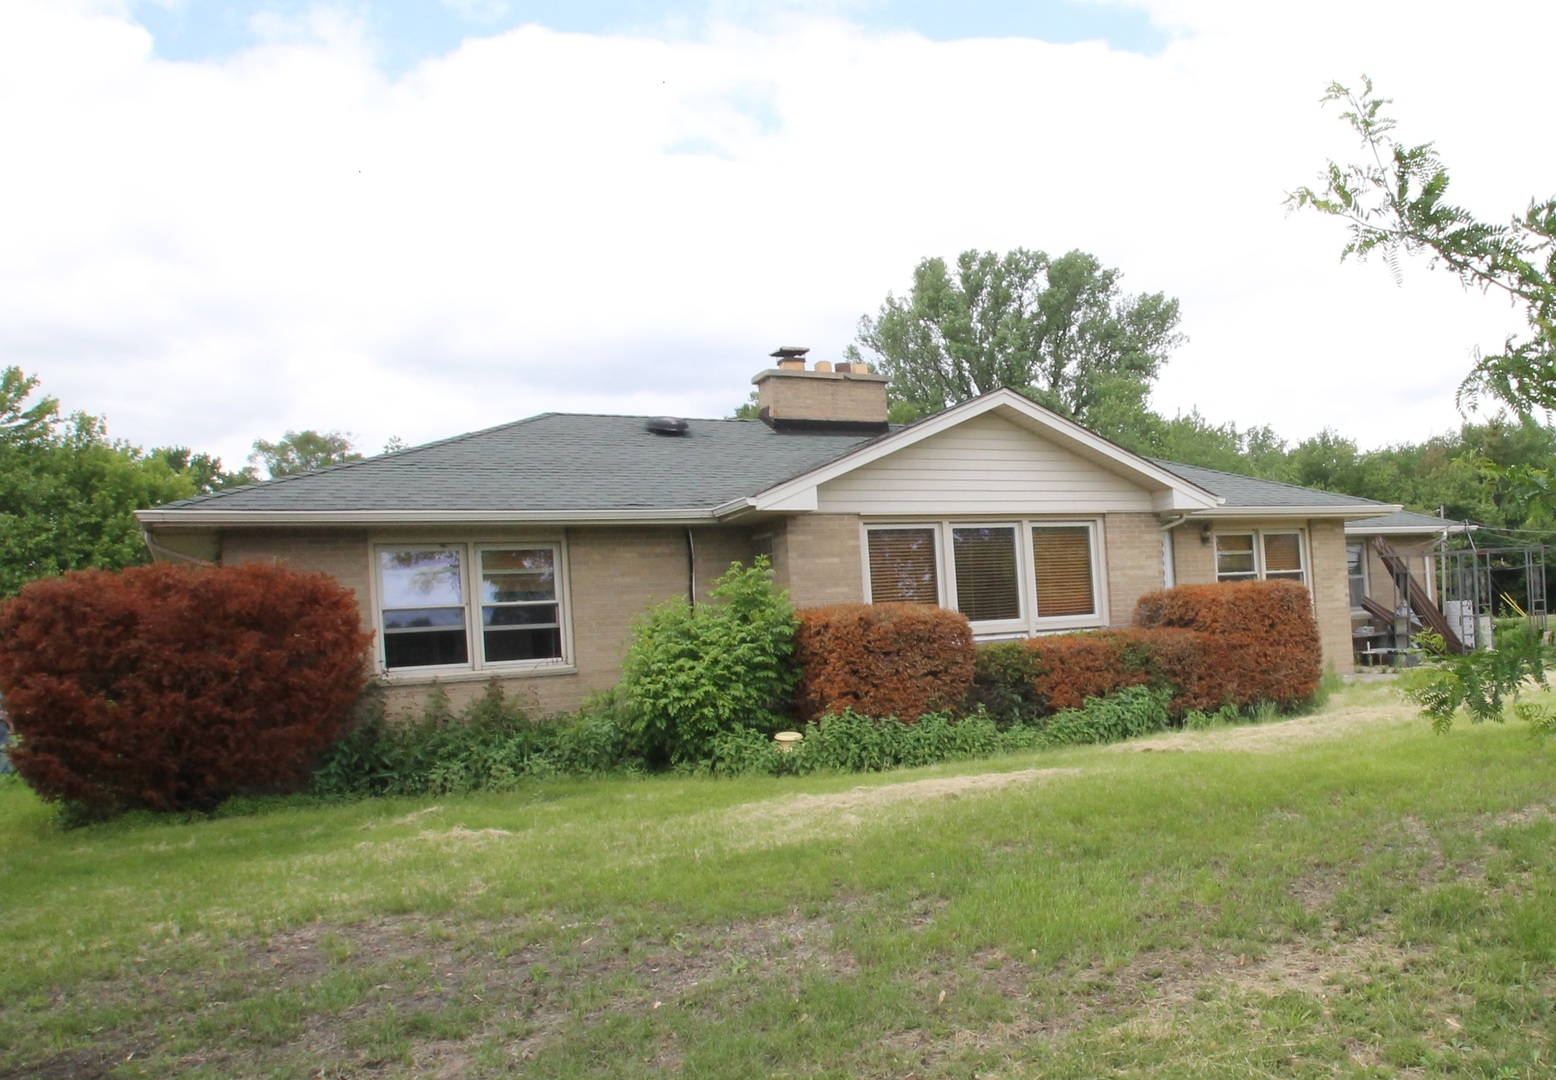 37633 North Frank Court, Spring Grove, Illinois 60081